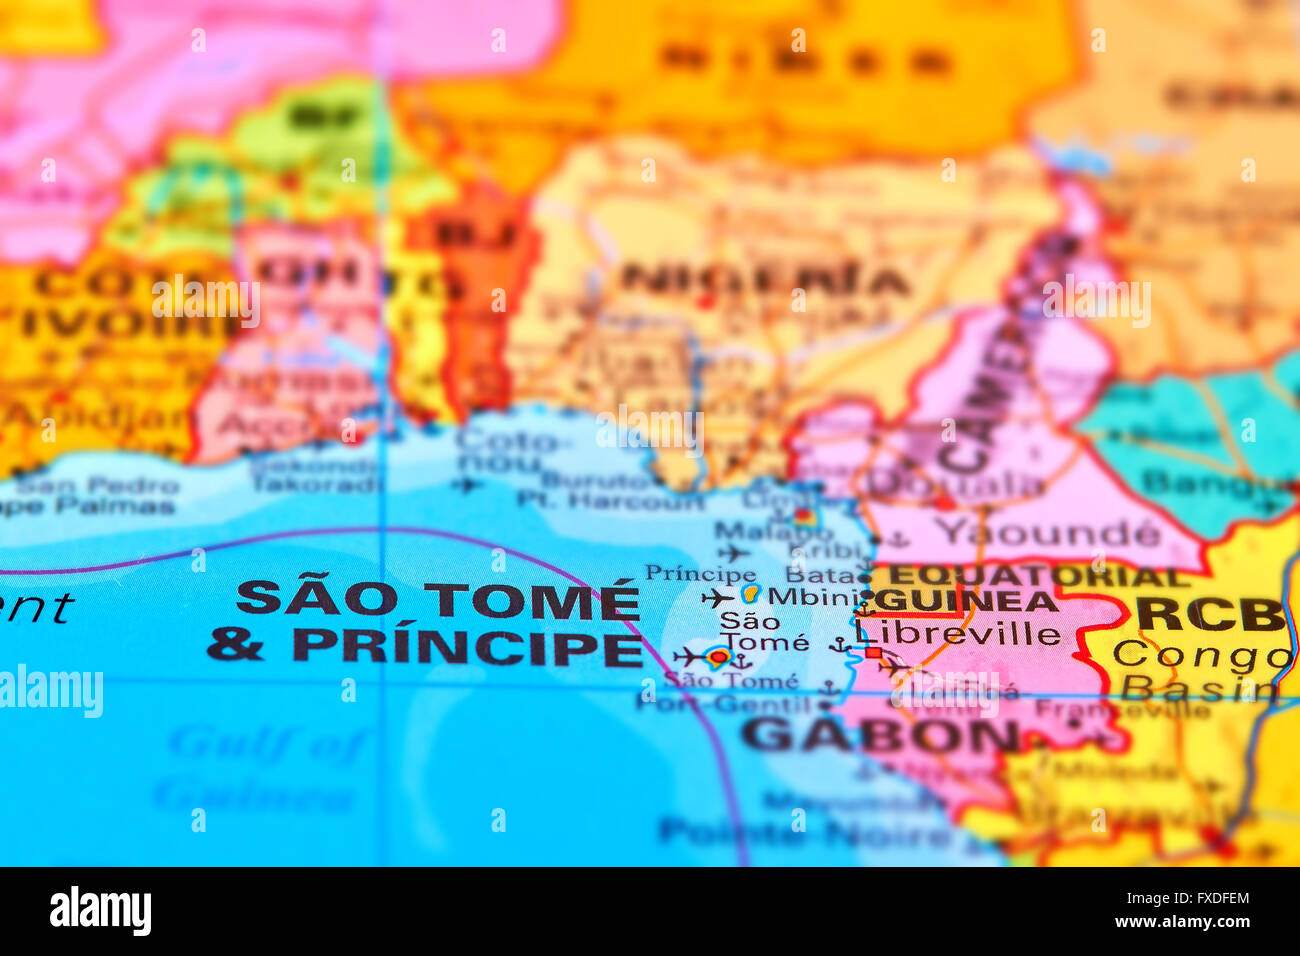 Sao Tome And Principe In Africa On The World Map Stock Photo - Sao tome and principe map